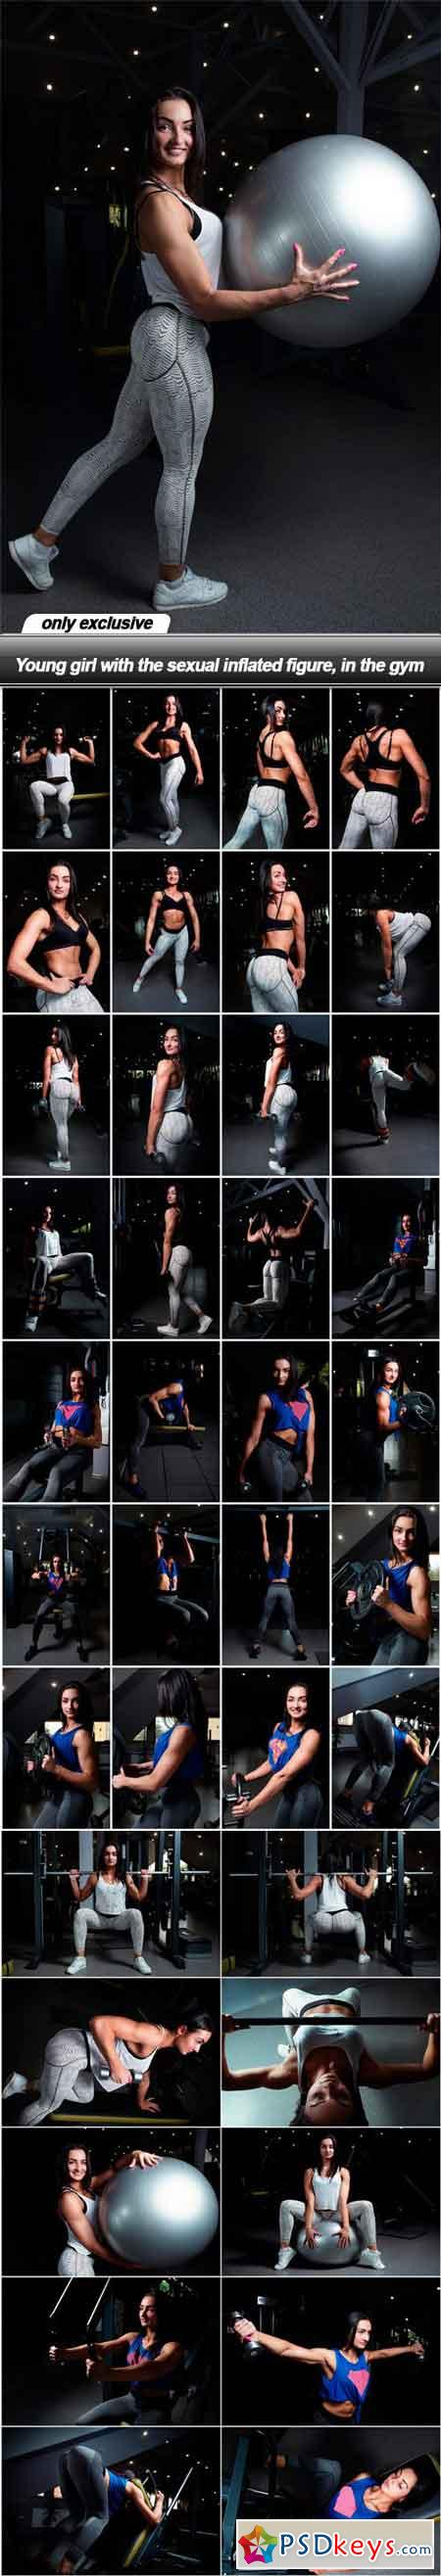 Young girl with the sexual inflated figure, in the gym - 39 UHQ JPEG